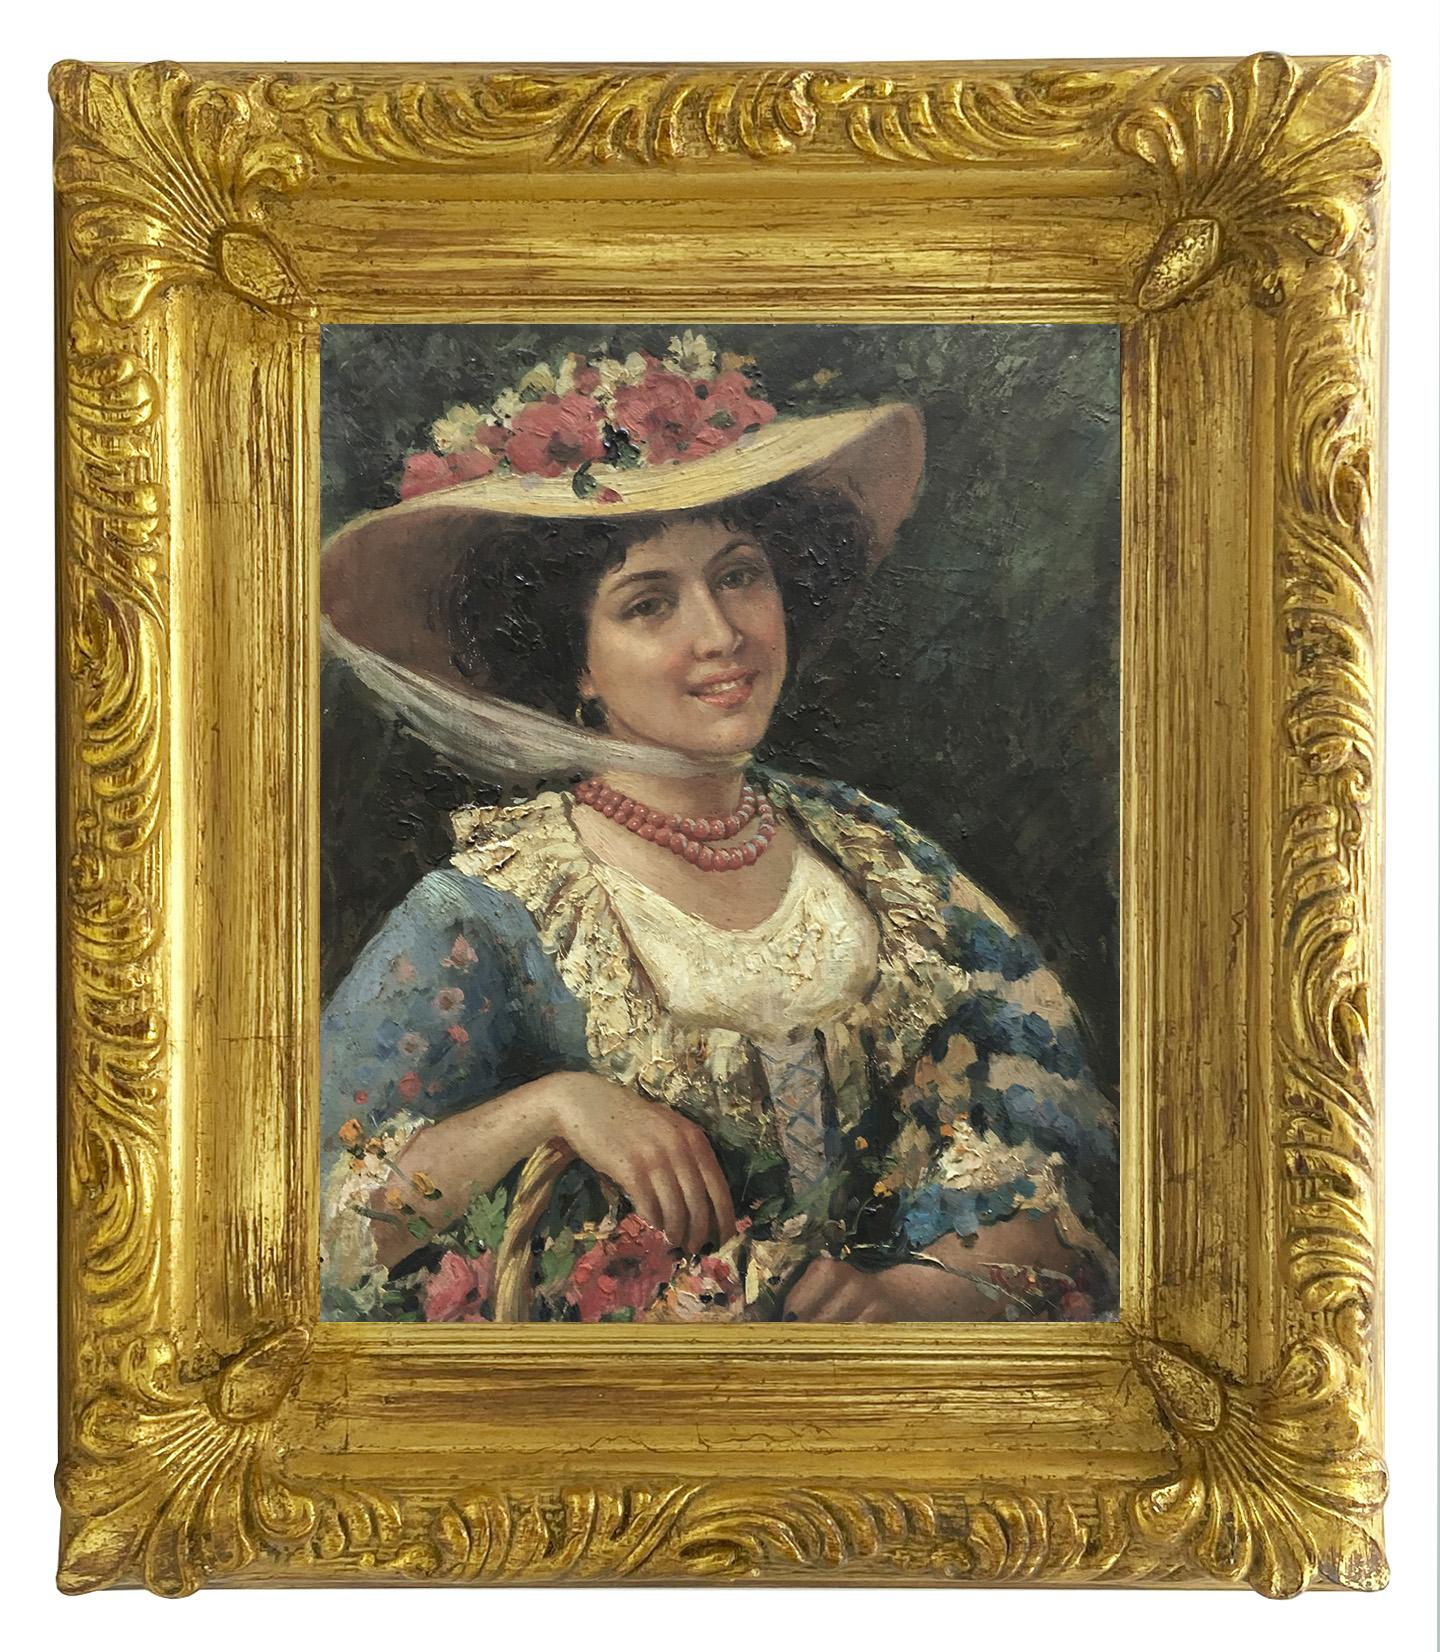 SPRING PORTRAIT- French School Impressionist - Italian Oil on Canvas Painting